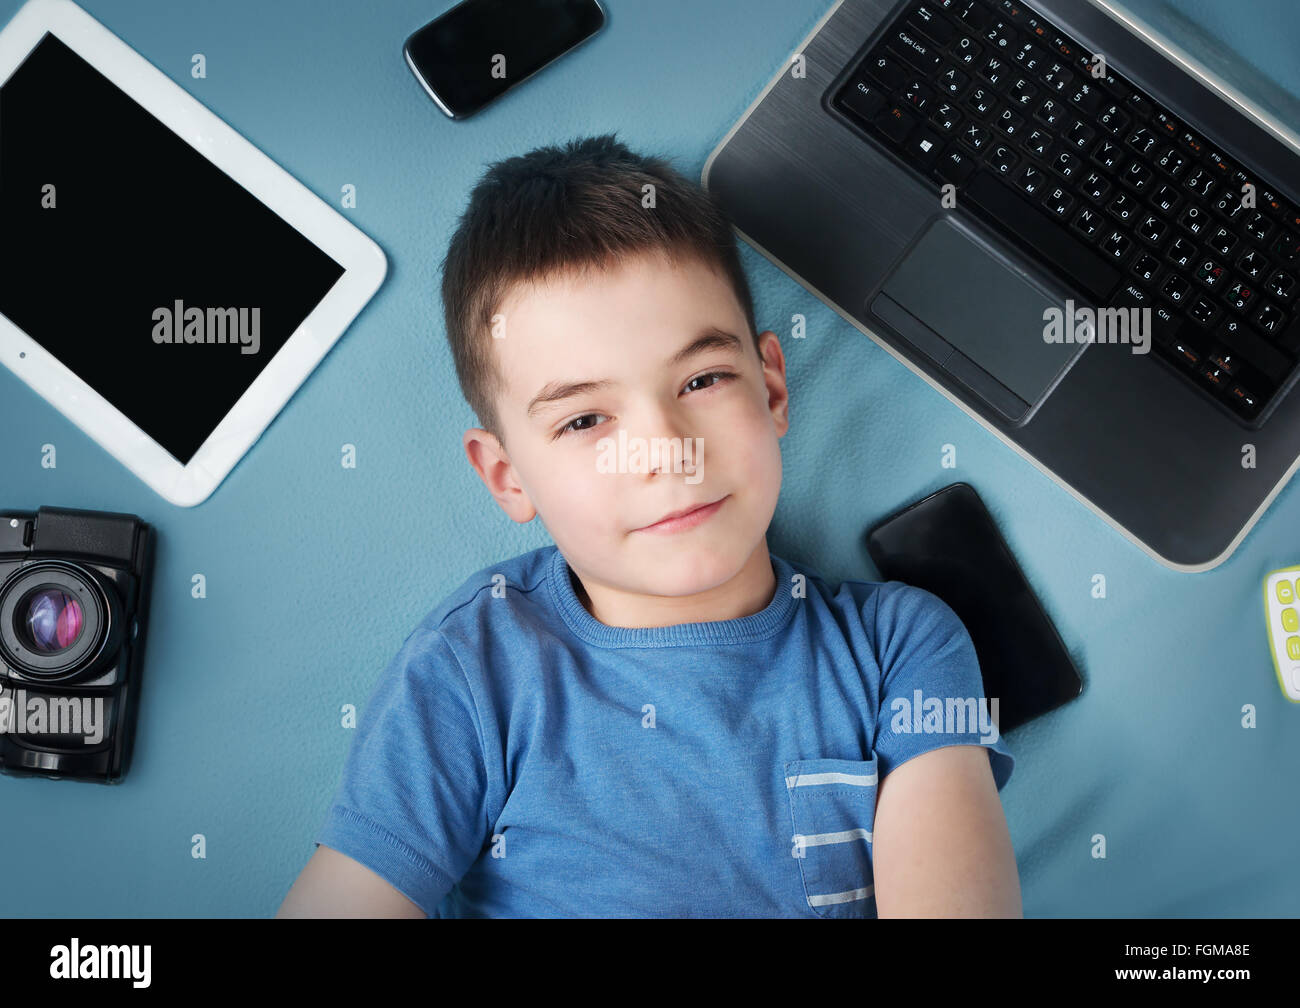 boy on blue blanket background with laptop - Stock Image